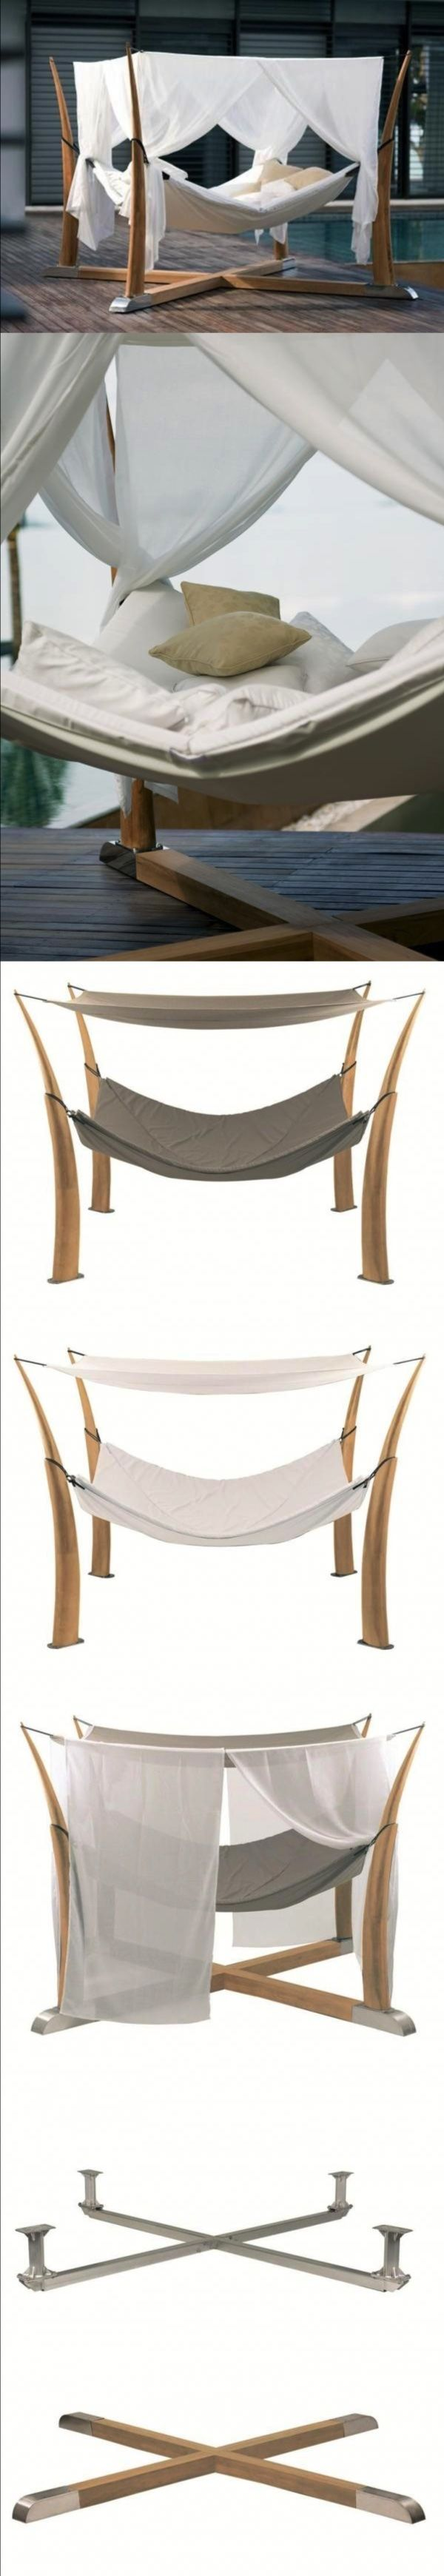 Captivating KOKOON   Canopy BedThe Kokoon Garden Furniture Range Has Been Carefully  Designed To Help Get Away From The Hectic World And Help Create A Private  Universe ...